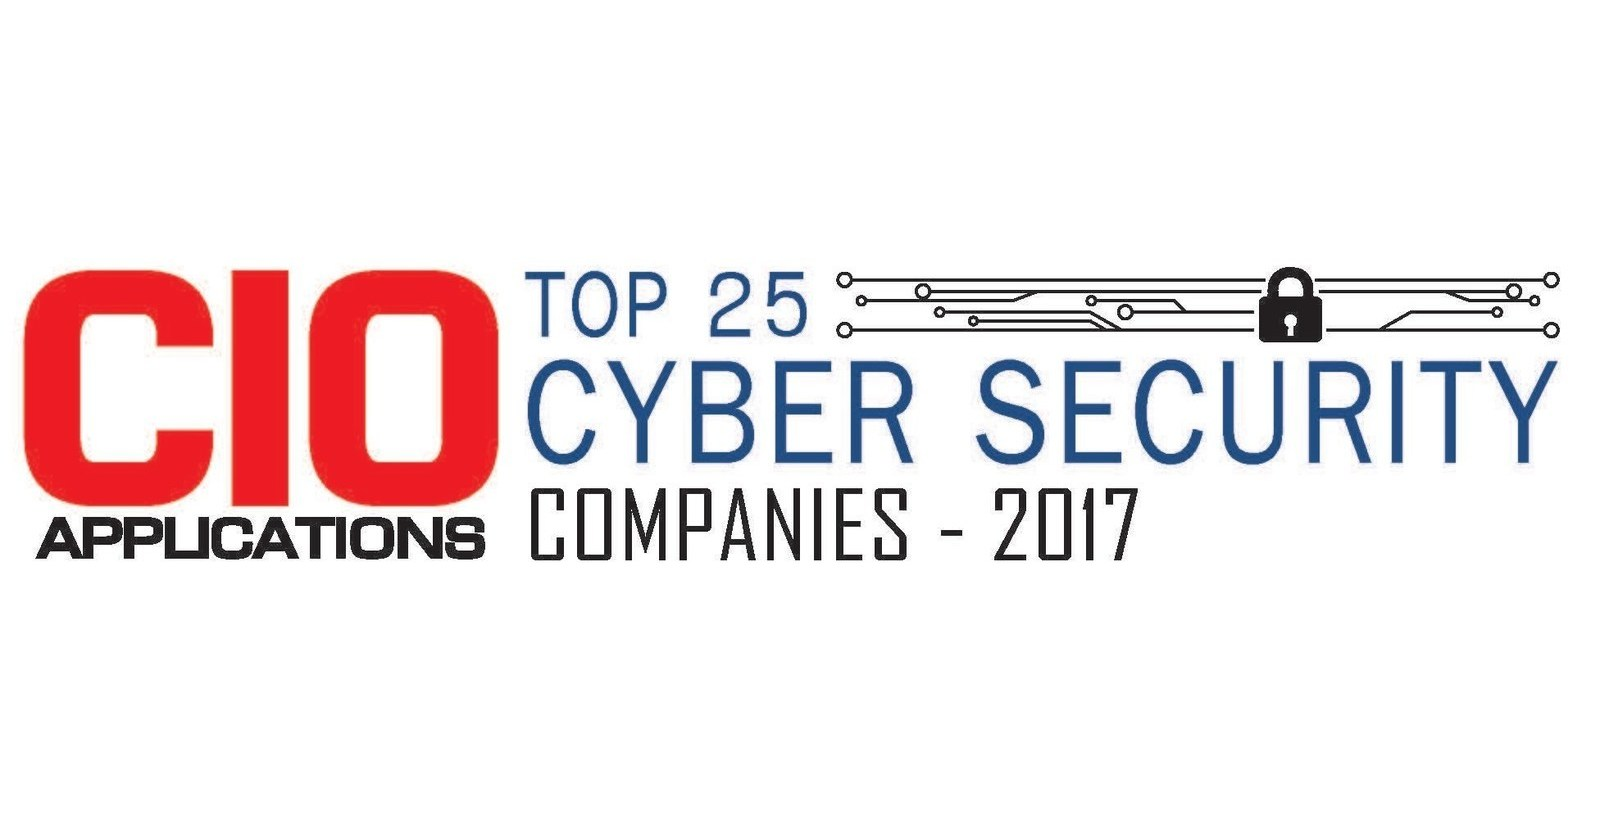 Snoopwall Named One Of The Top 25 Cyber Security Companies